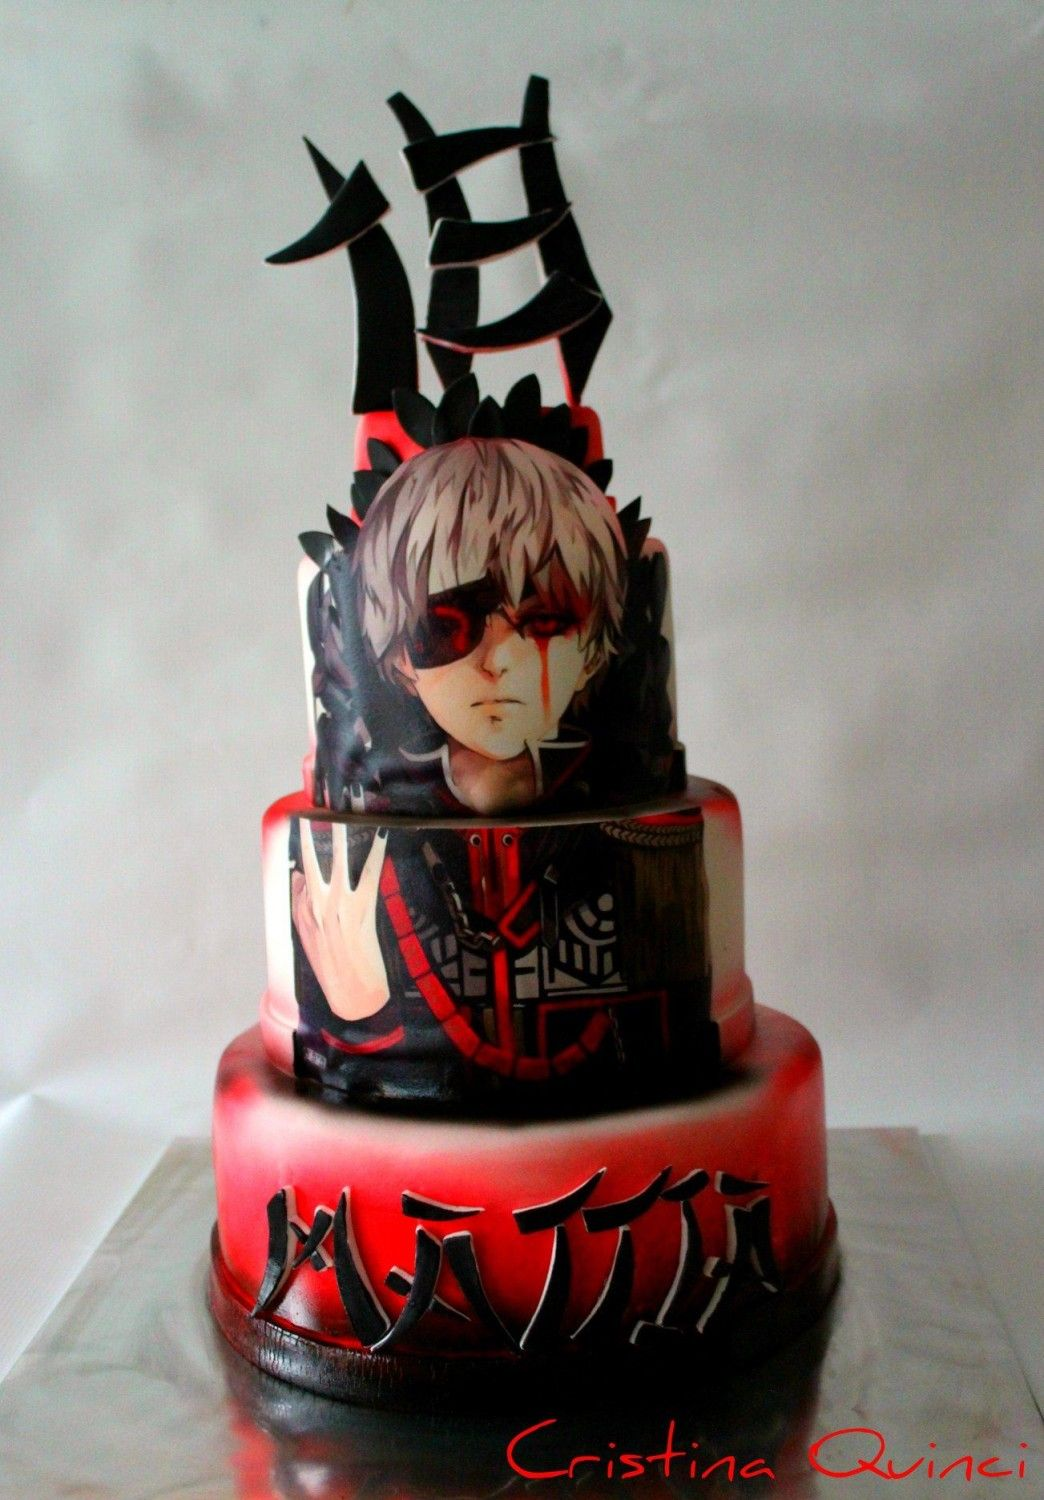 Anime cake by Cristina Quinci (With images) Anime cake